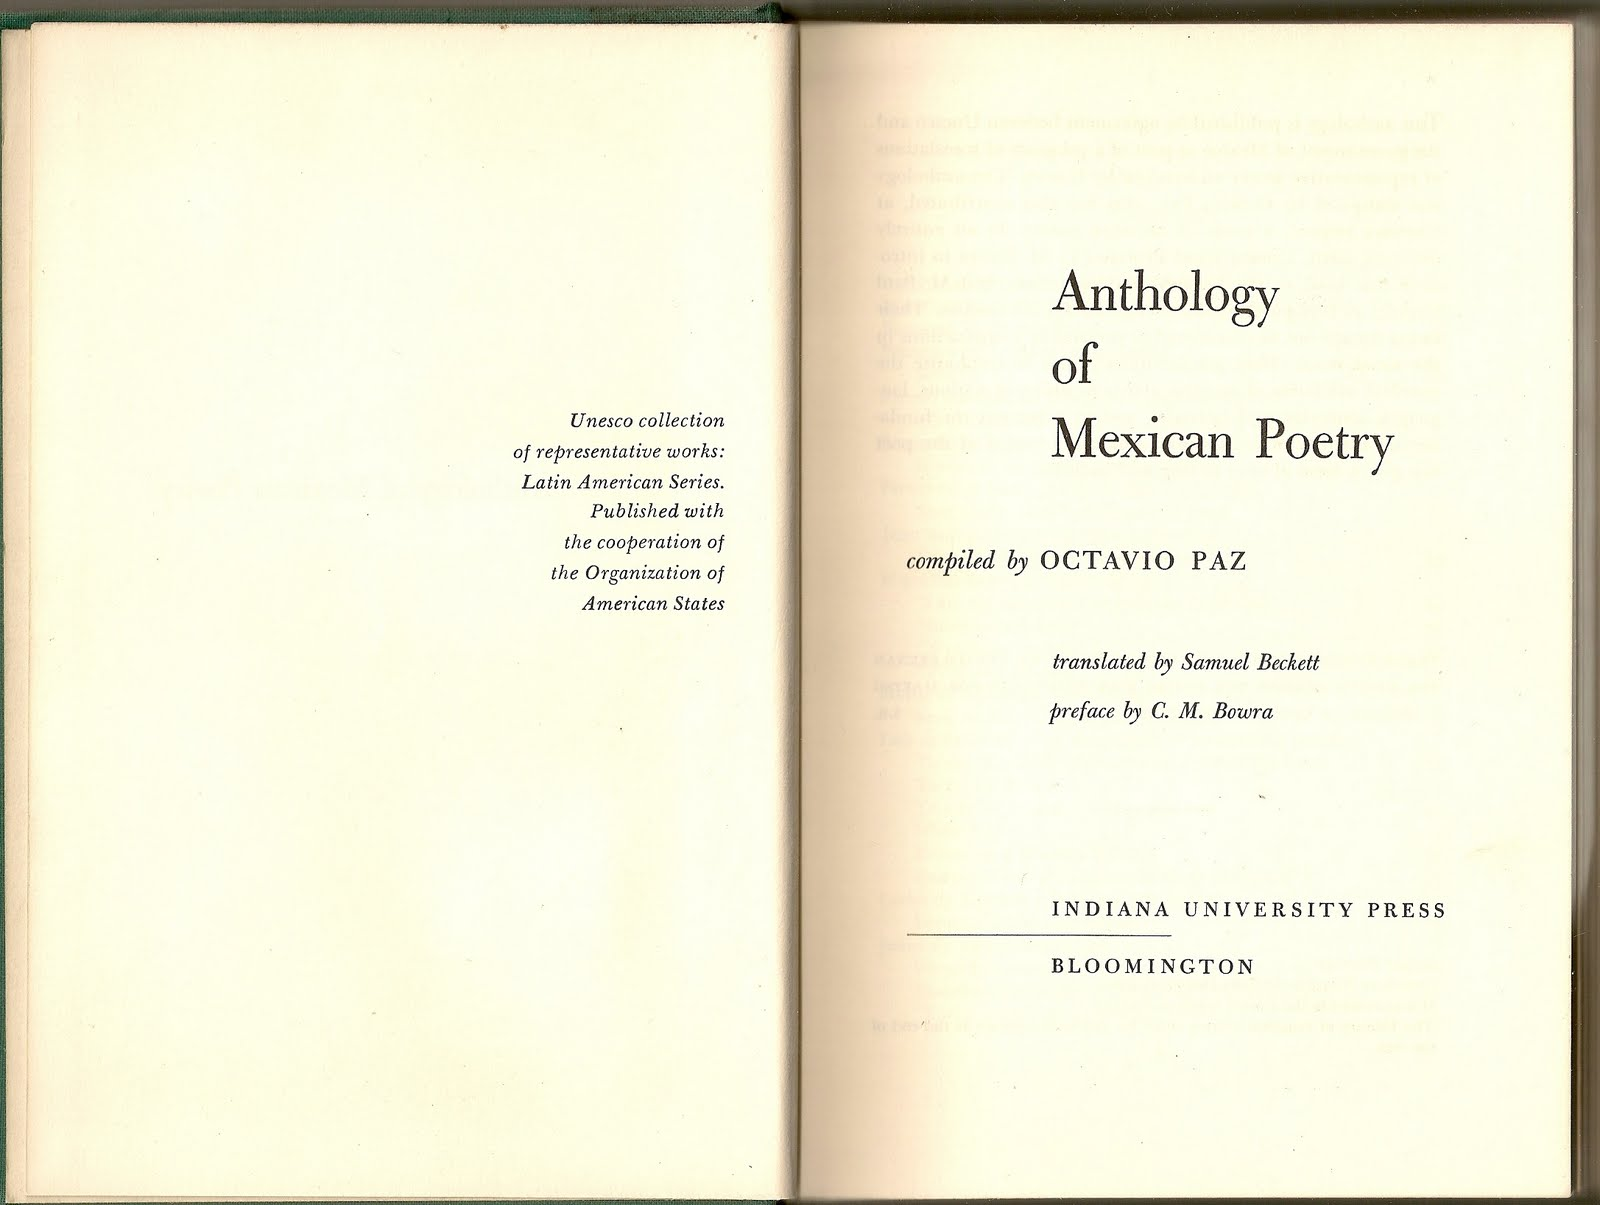 post structuralist reality of mexican poetry The making of modern greece: nationalism, romanticism & the of the nation by current post-structuralist and examined as a historical reality.